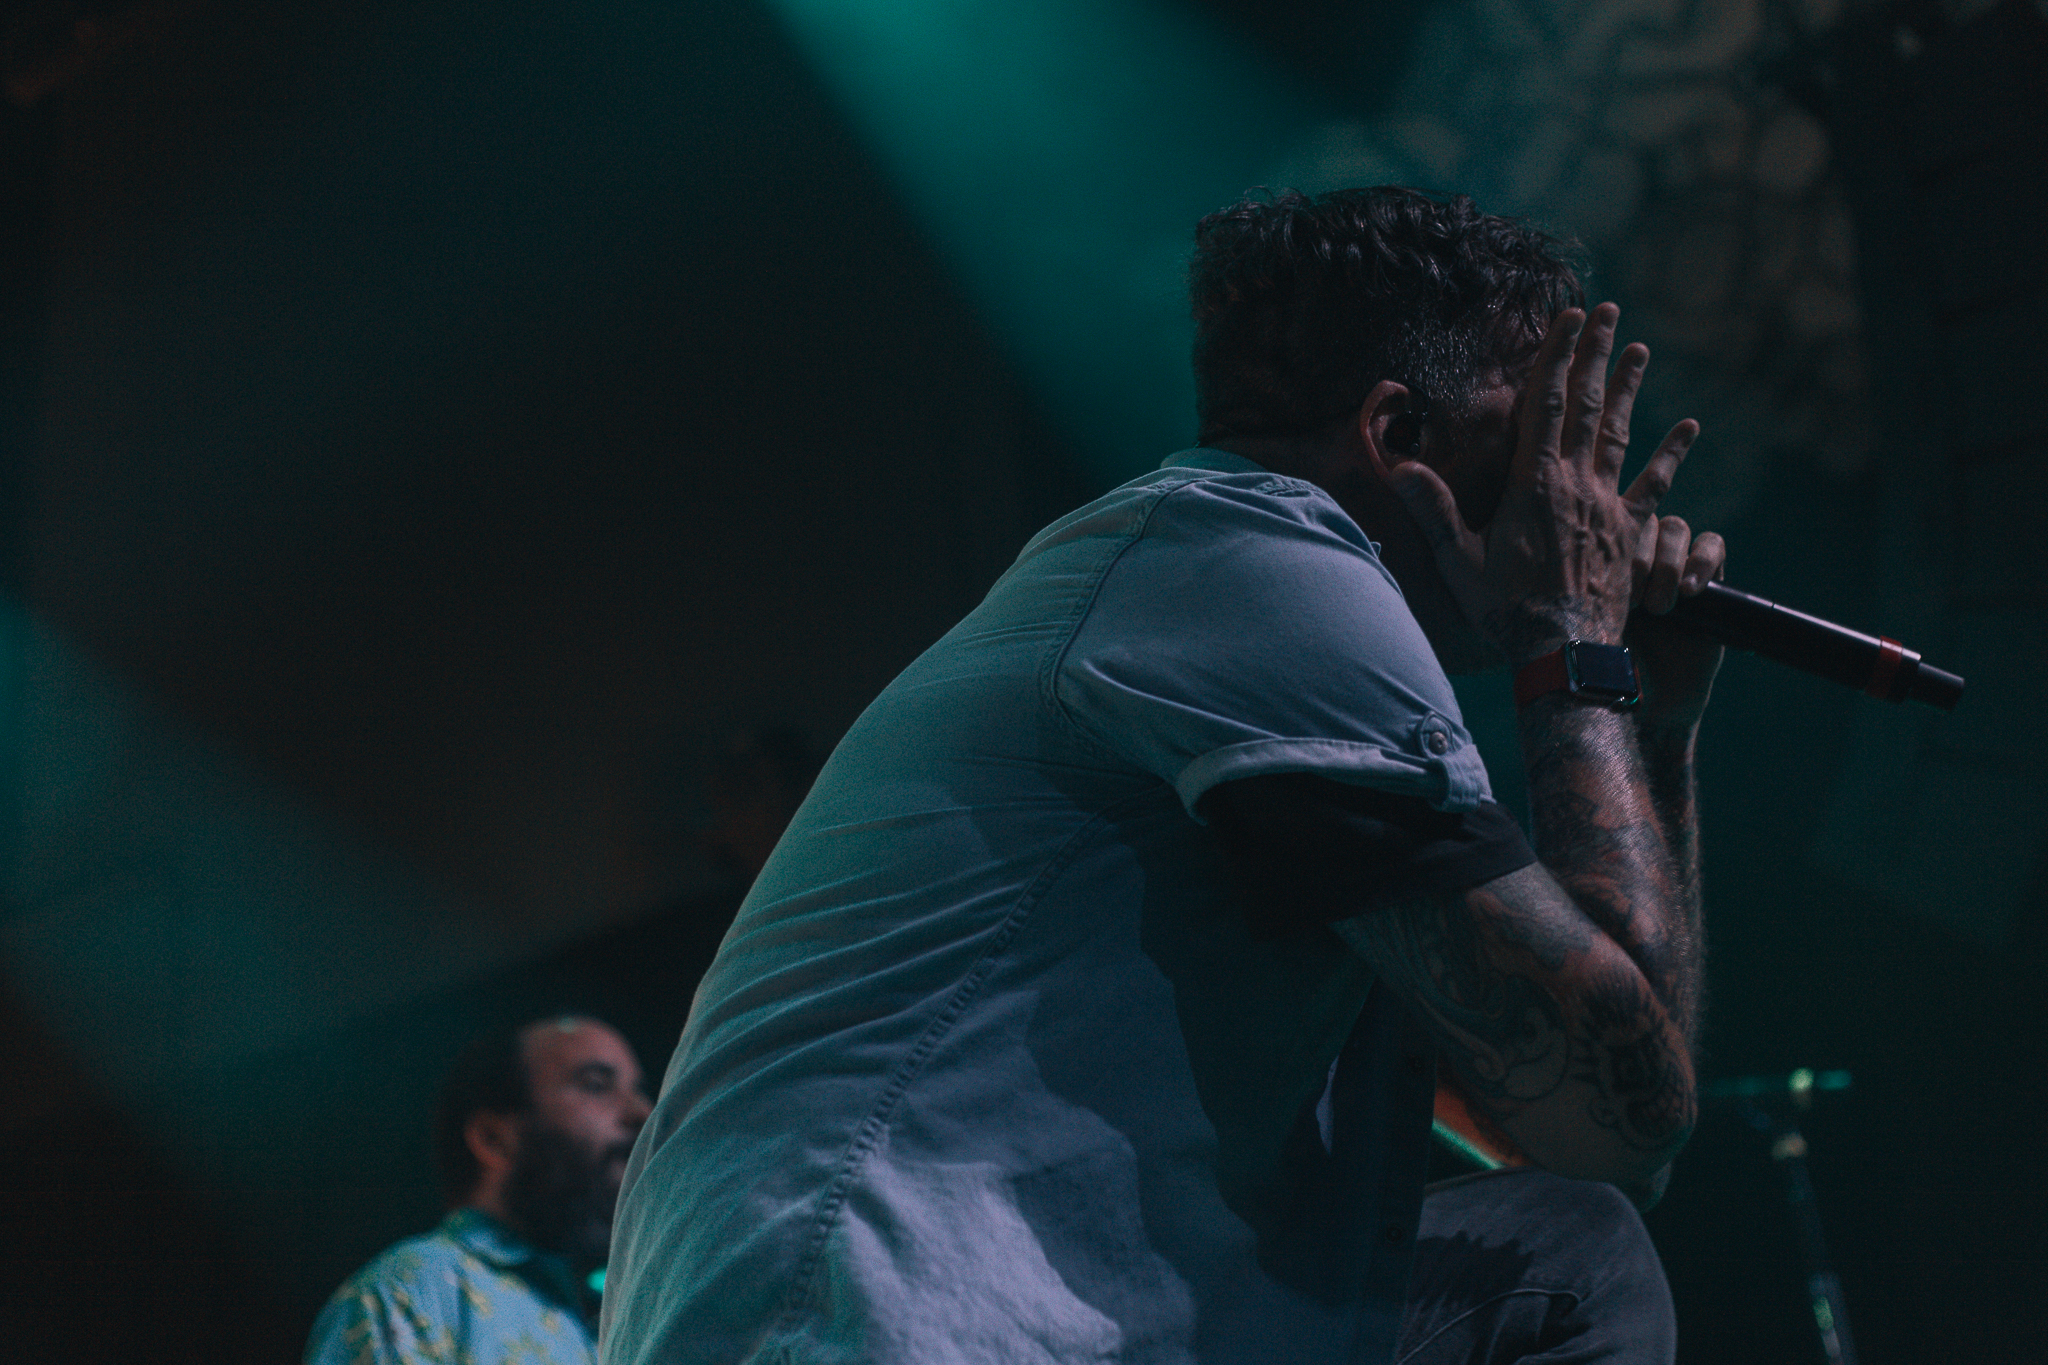 NEW FOUND GLORY PERFORMING AT EMO'S IN AUSTIN, TX ON JUNE 21, 2018.